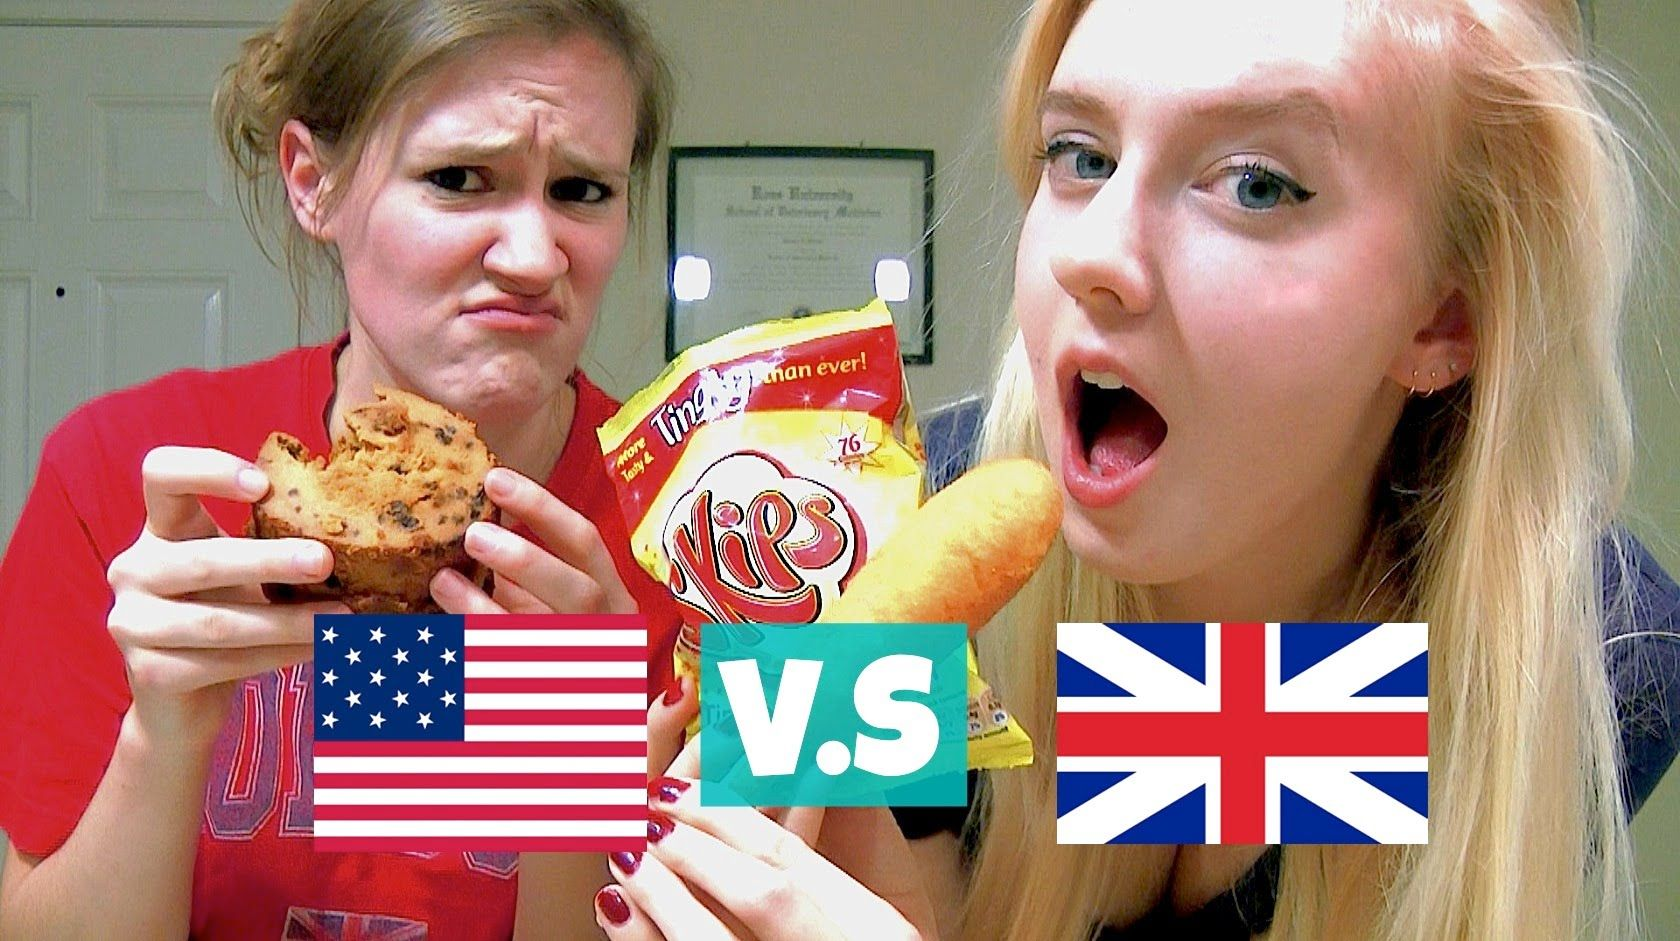 British Vs American Food